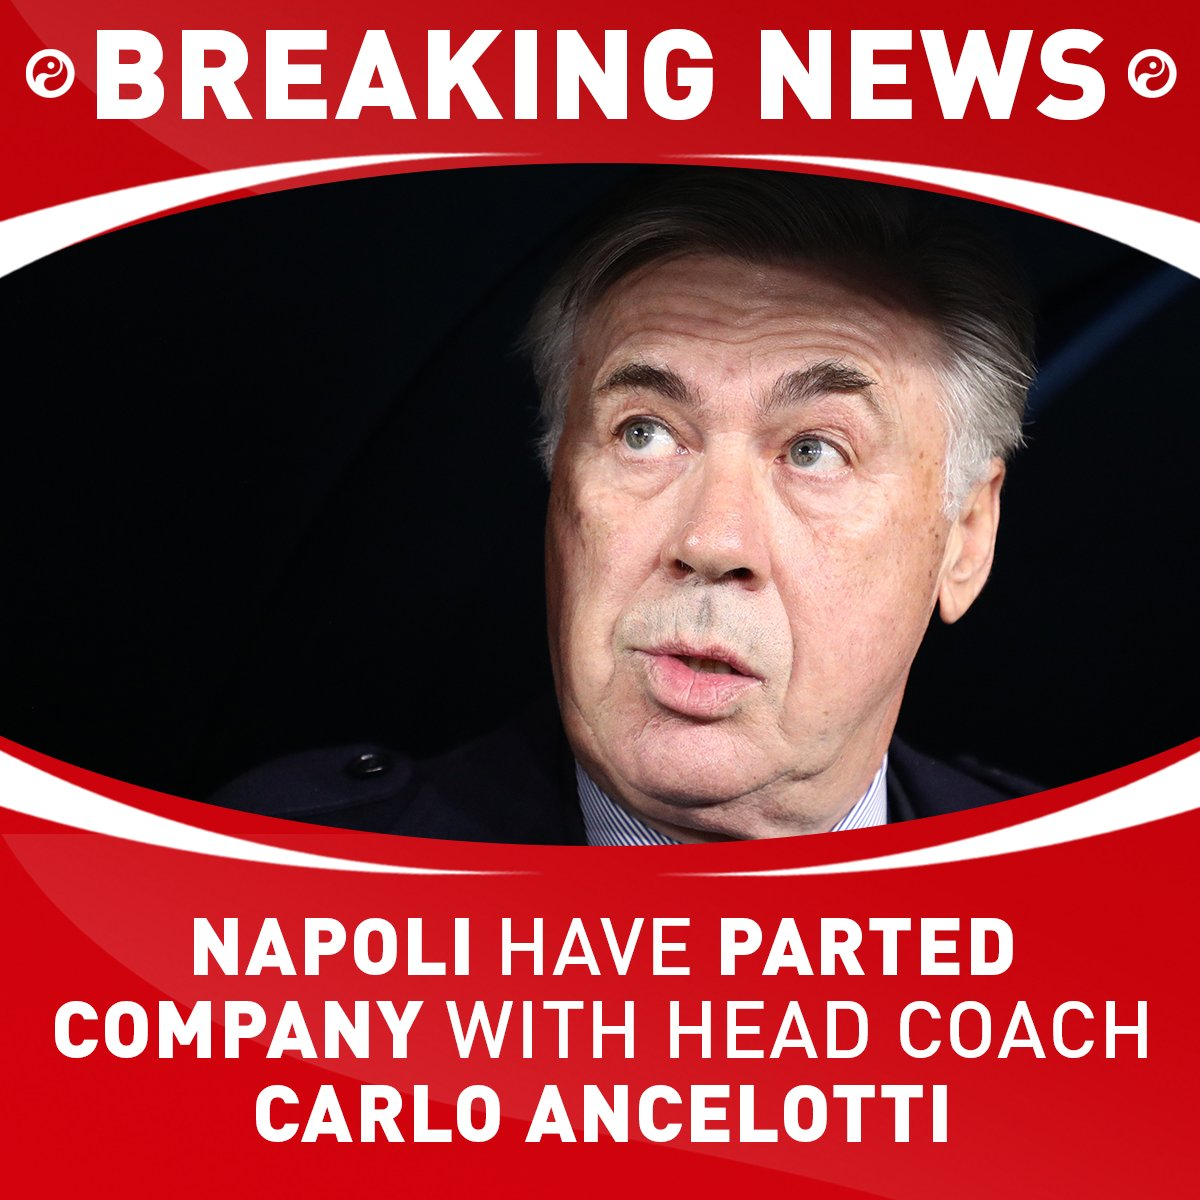 Carlo Ancelotti is the only manager in #UCL history to guide a club from each of Europe's top five leagues to the knock-out stages: 🏴 Chelsea 🇫🇷 PSG 🇩🇪 Bayern Munich 🇪🇸 Real Madrid 🇮🇹 AC Milan, Napoli Now he's done it with two Italian clubs. *mic drop*